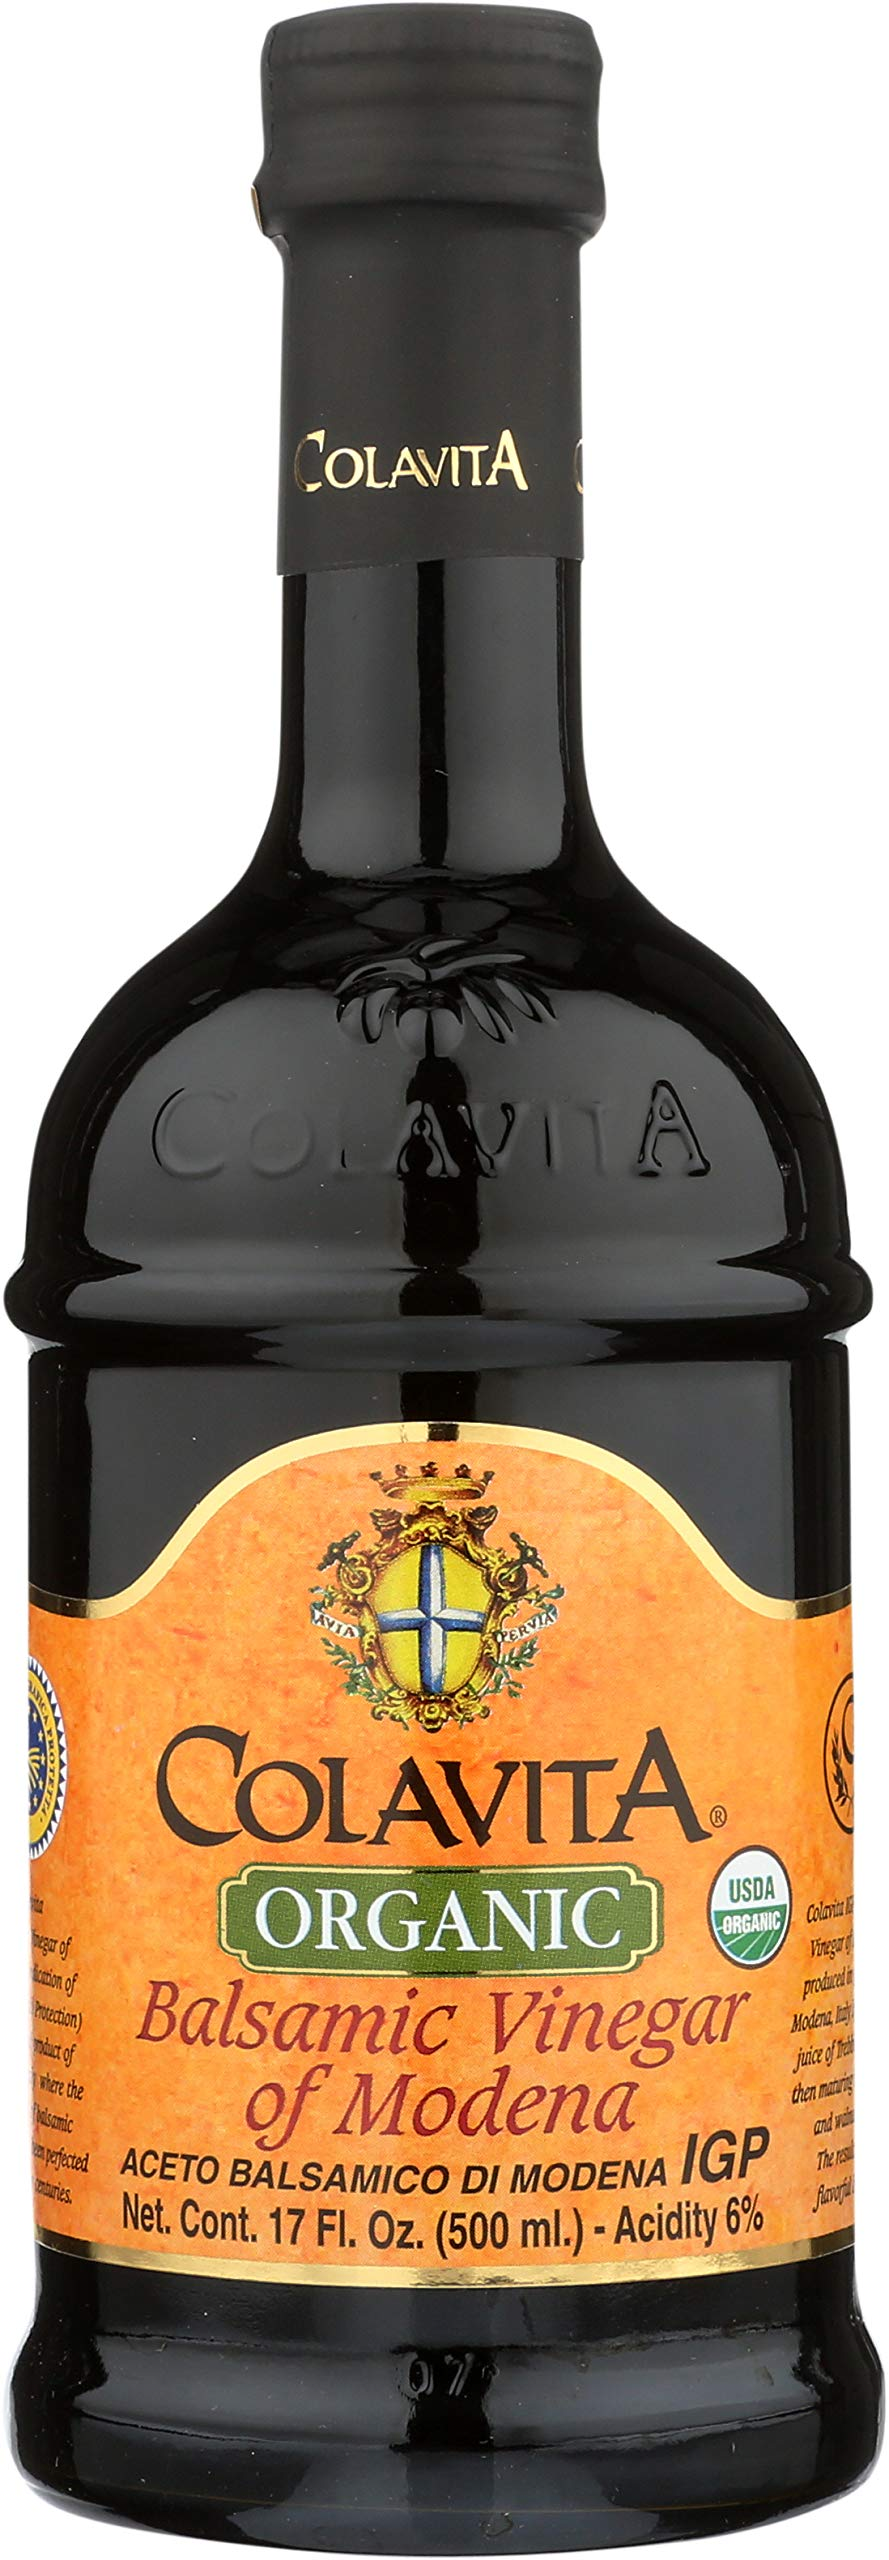 Colavita Balsamic Vinegar, 5-Ounce Bottles (Pack of 16) 1 <p>Special 5oz bottle Colavita Balsamic Vinegar. Enhance your dishes with the fruity tones of Colavita Balsamic Vinegar. In addition to salad dressings try adding Balsamic Vinegar to slow-cooked foods like soup or beans or use as a marinade for meat. Product of Italy</p>